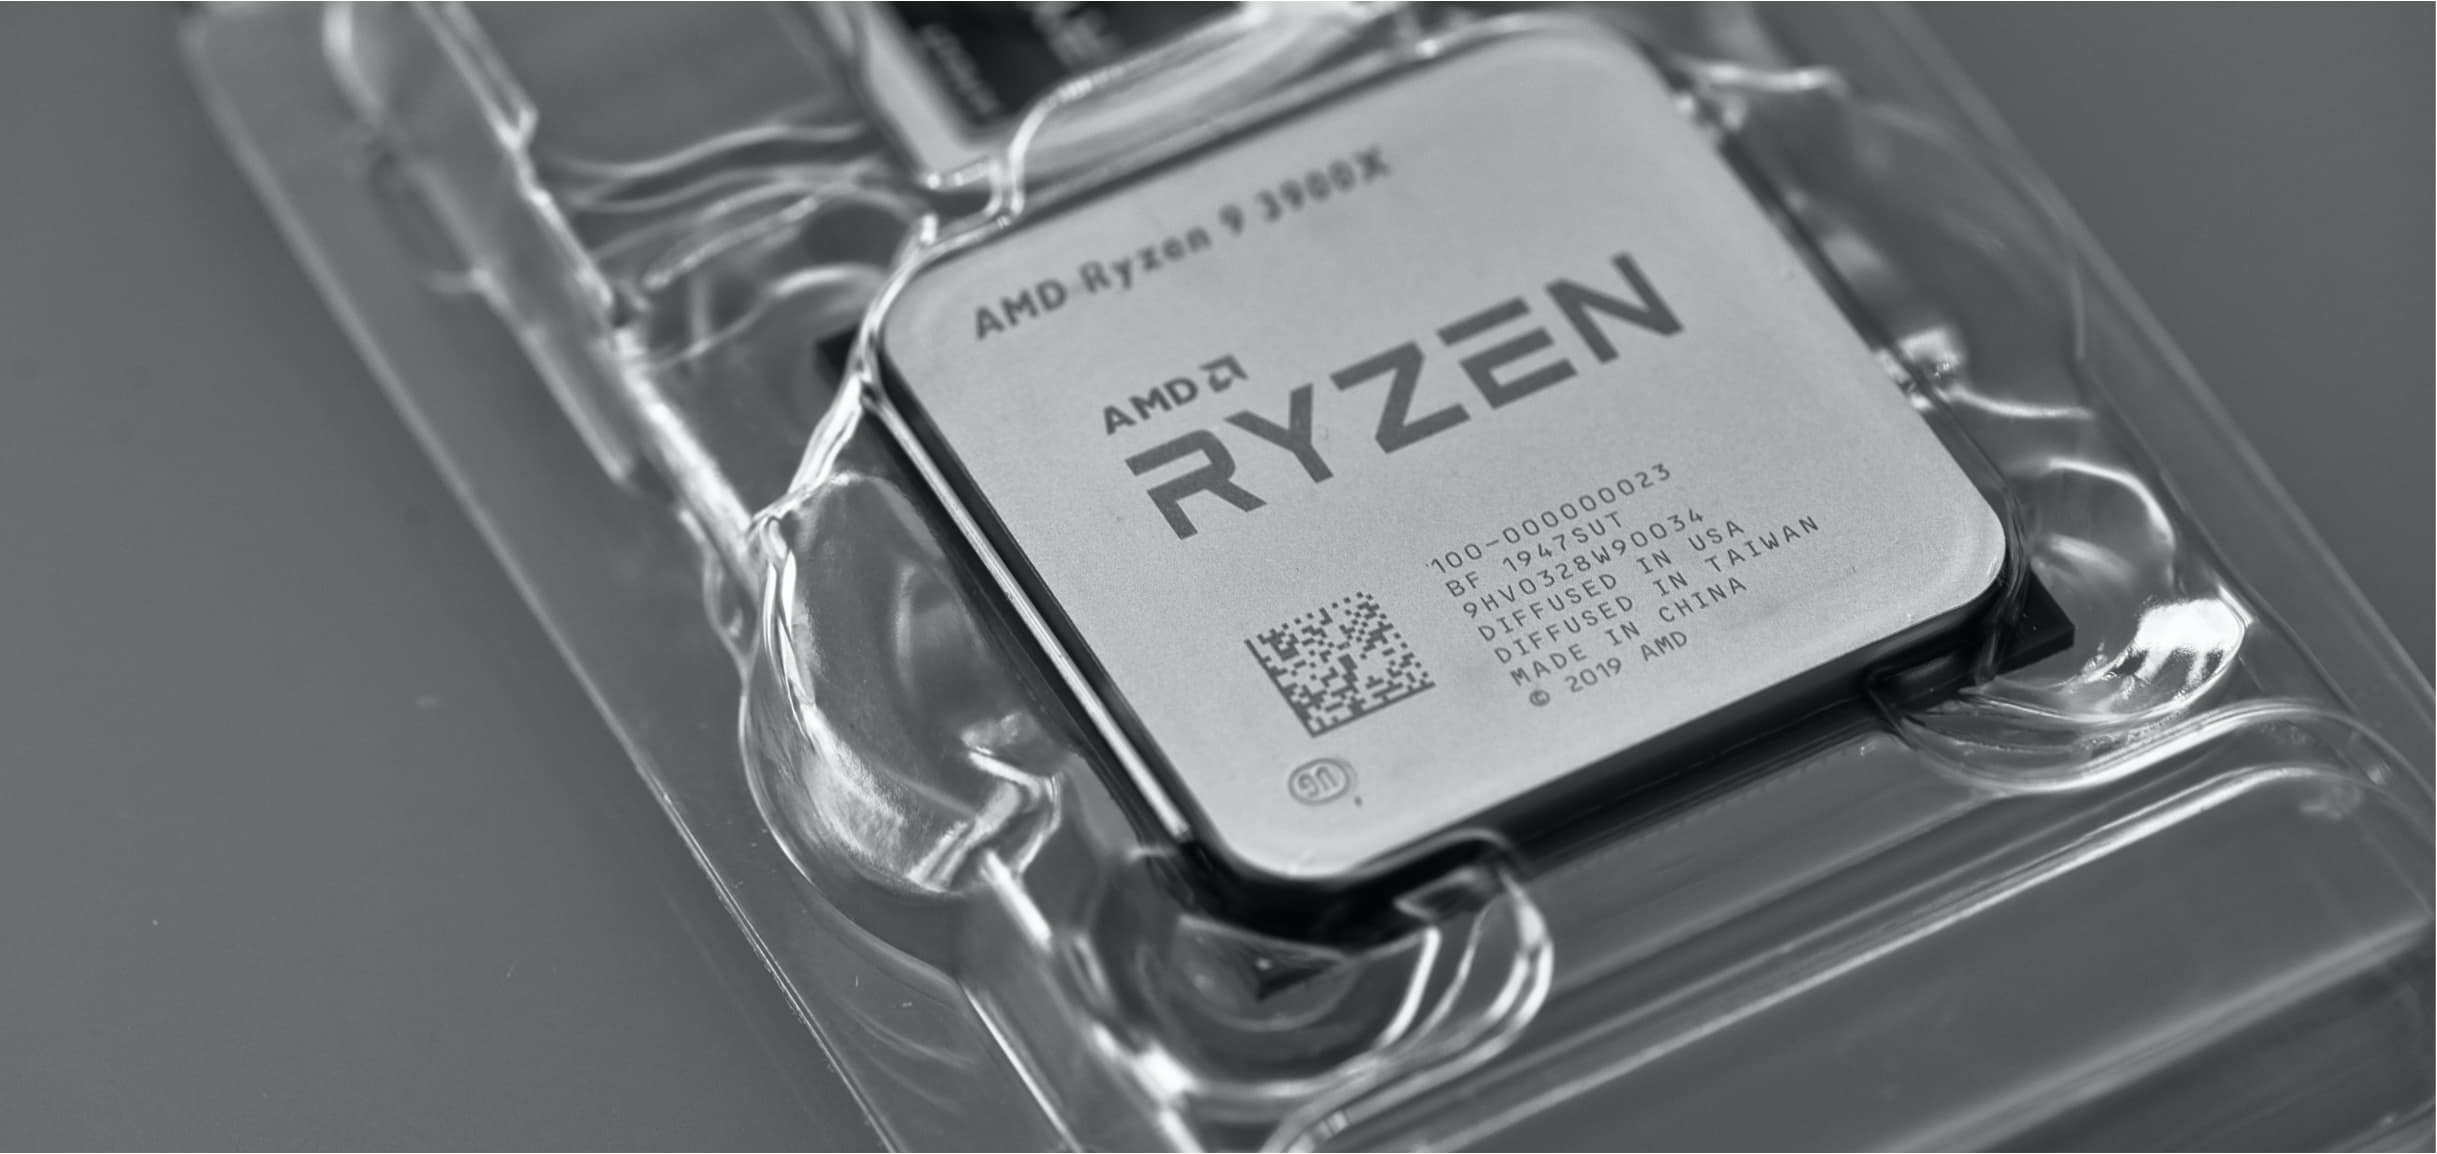 Zen 3-based Ryzen 4000 CPUs rumored to come with 10-core model, new features